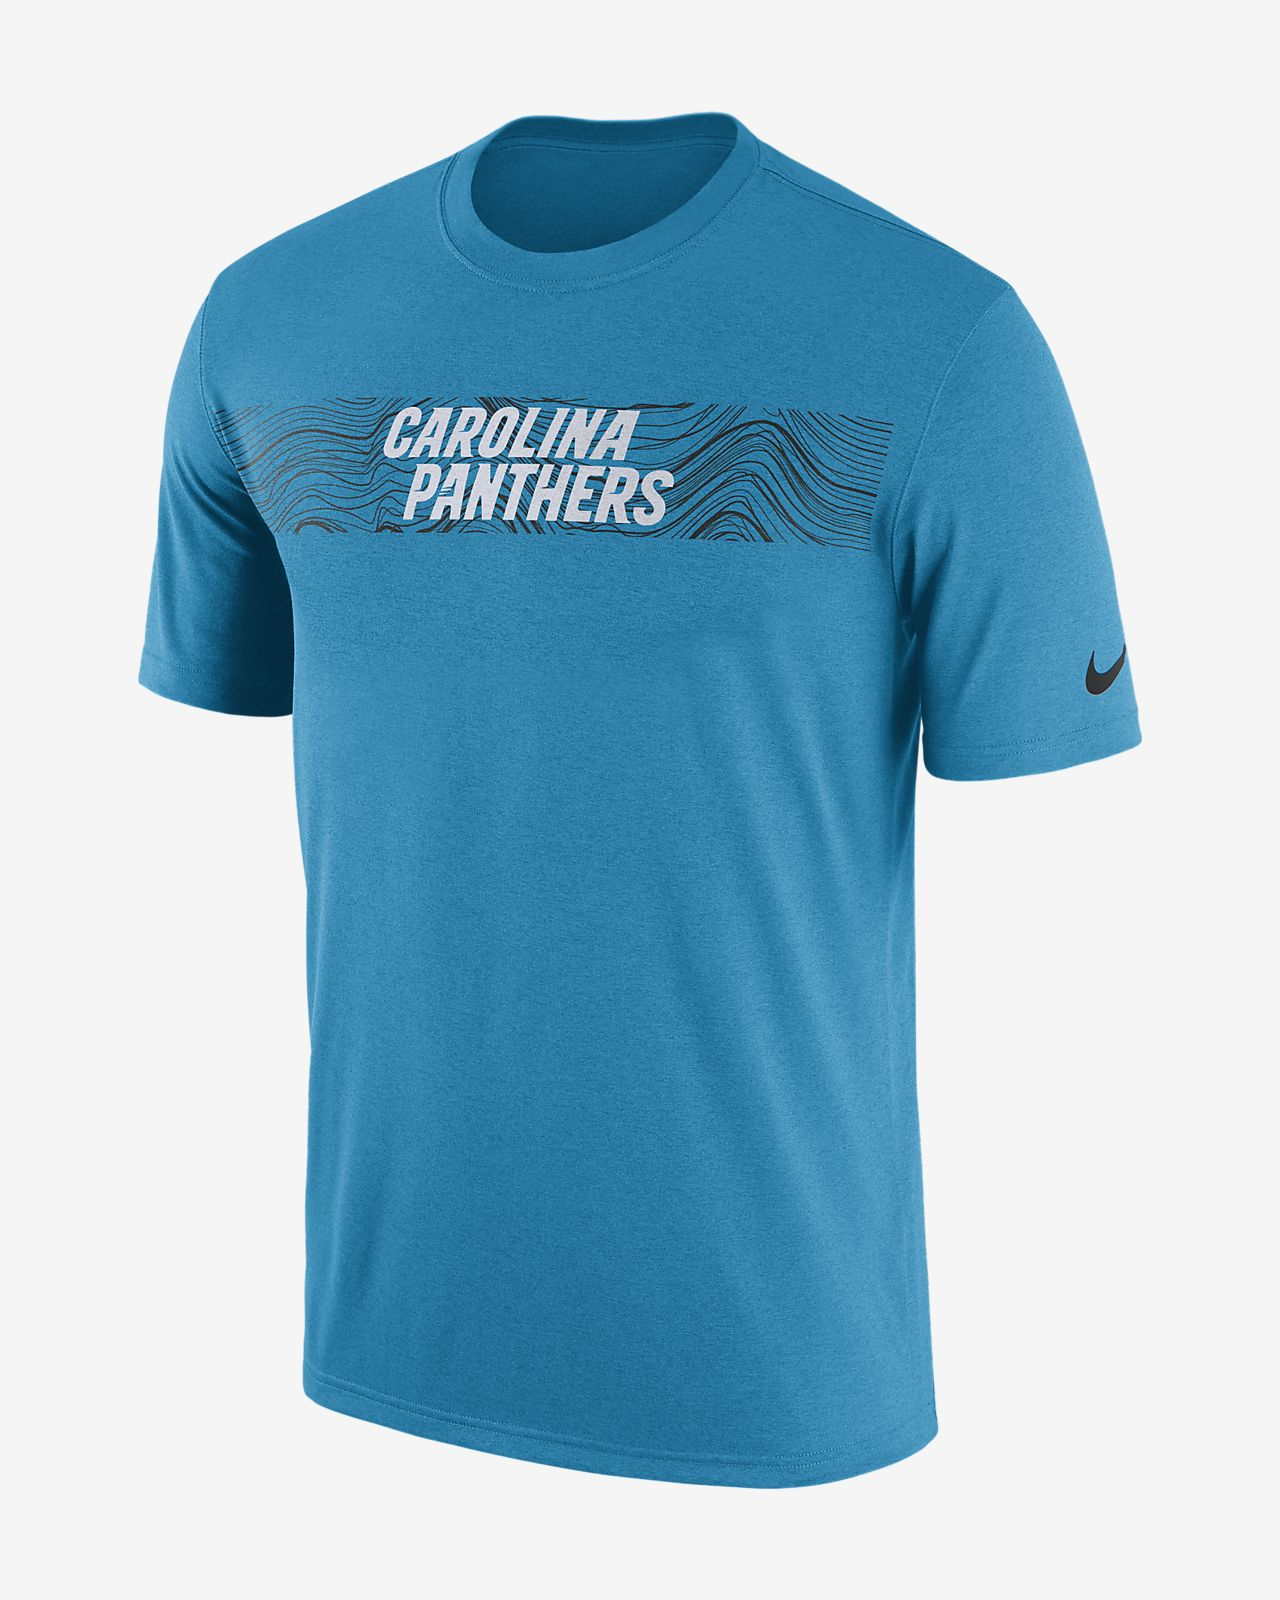 Nike Dri-FIT Legend Seismic (NFL Panthers) T-shirt voor heren